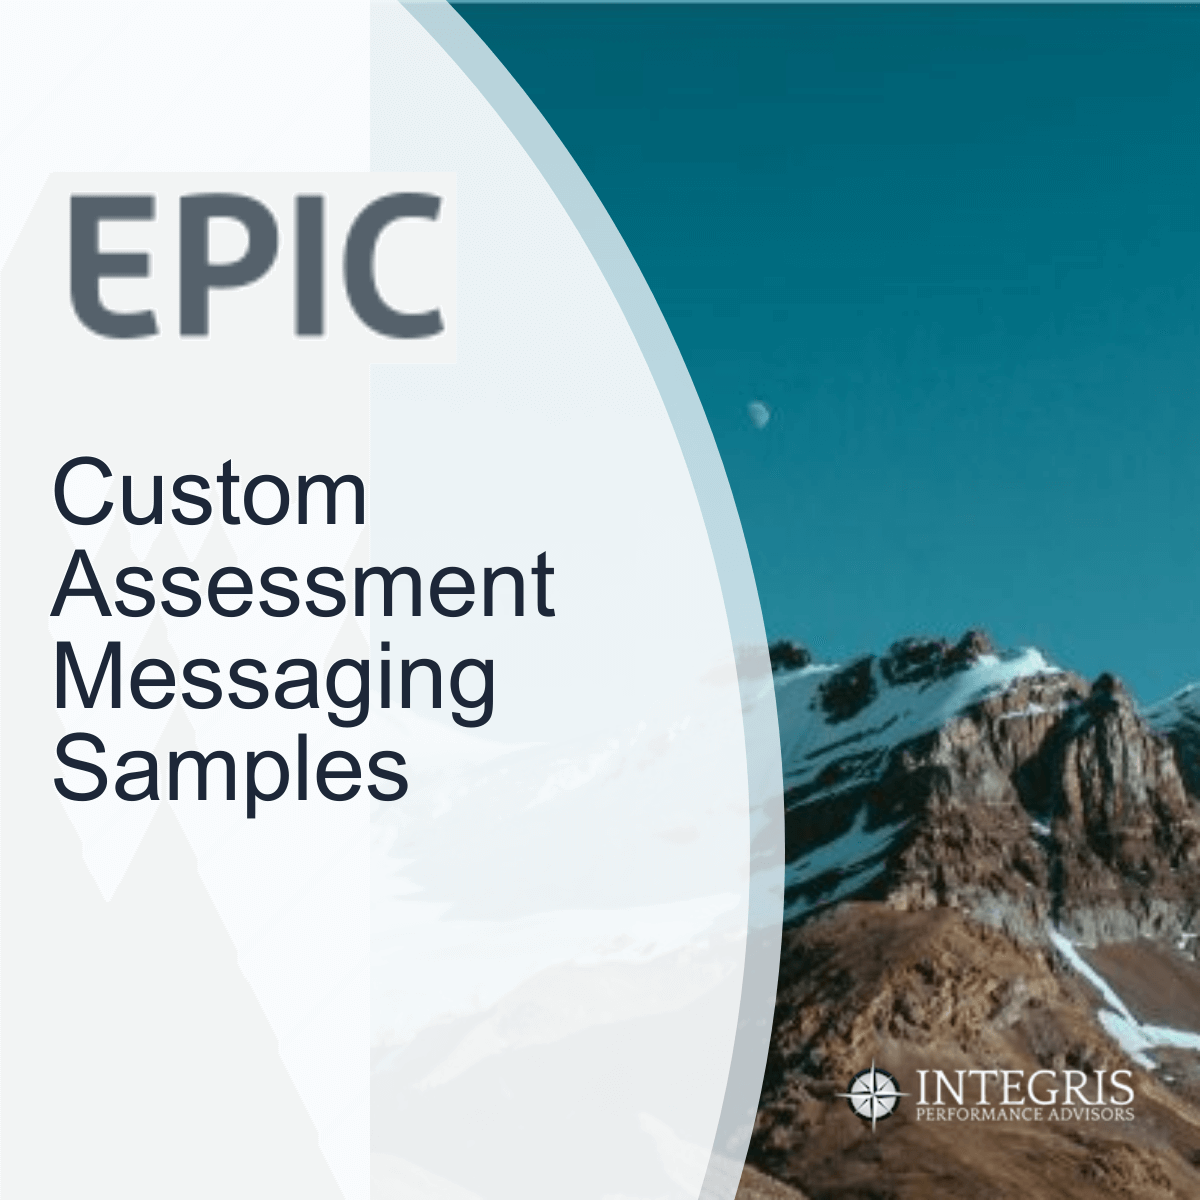 EPIC Custom Assessment Messaging Samples